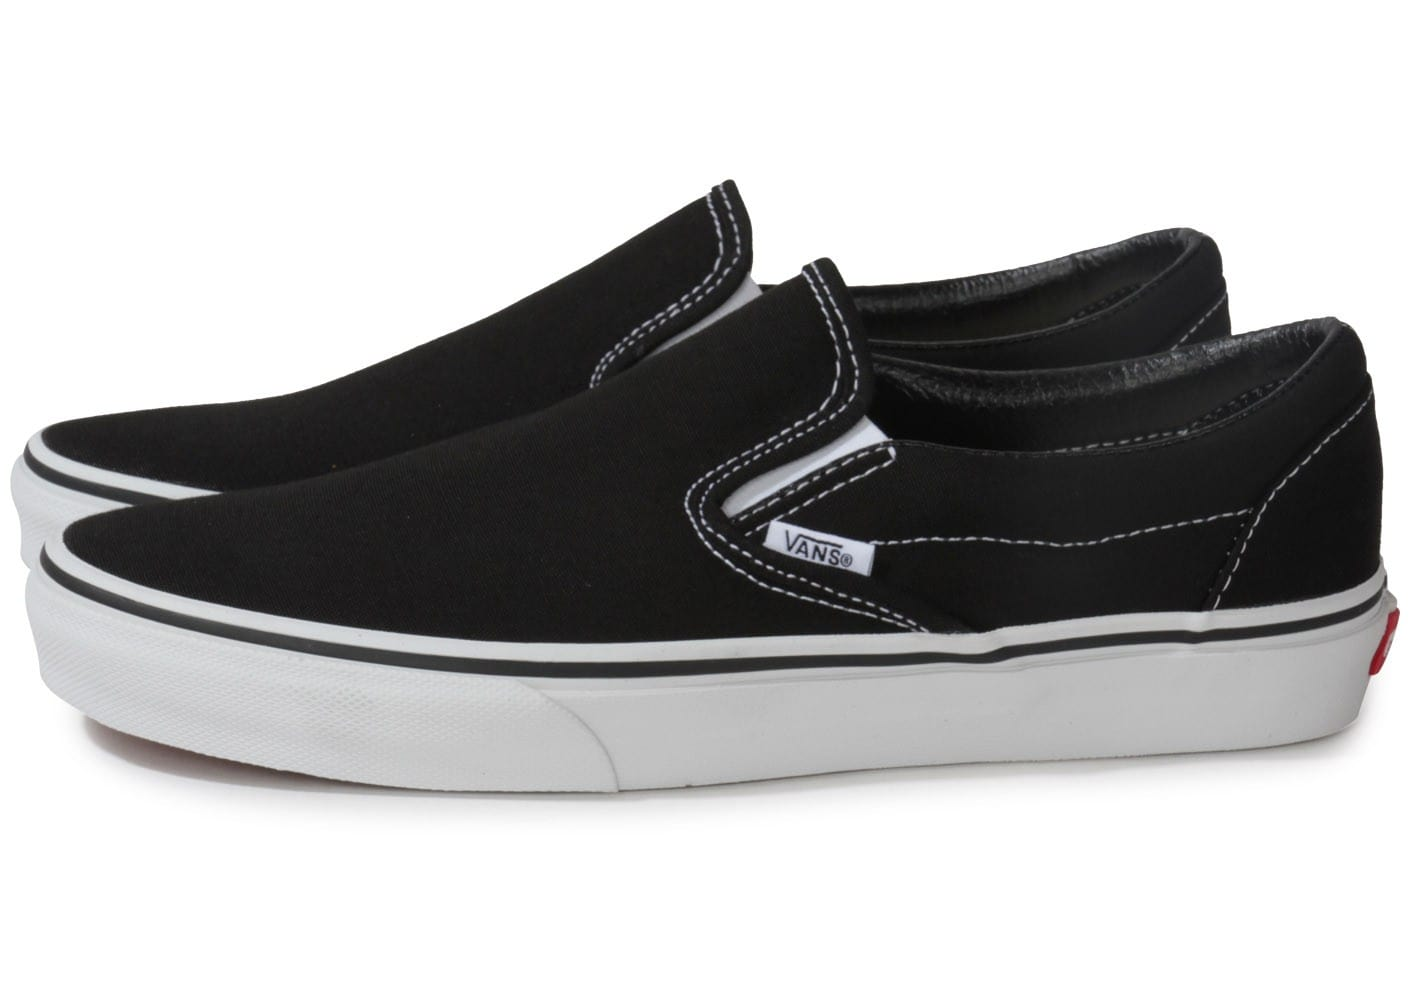 vans classic slip on noire chaussures homme chausport. Black Bedroom Furniture Sets. Home Design Ideas